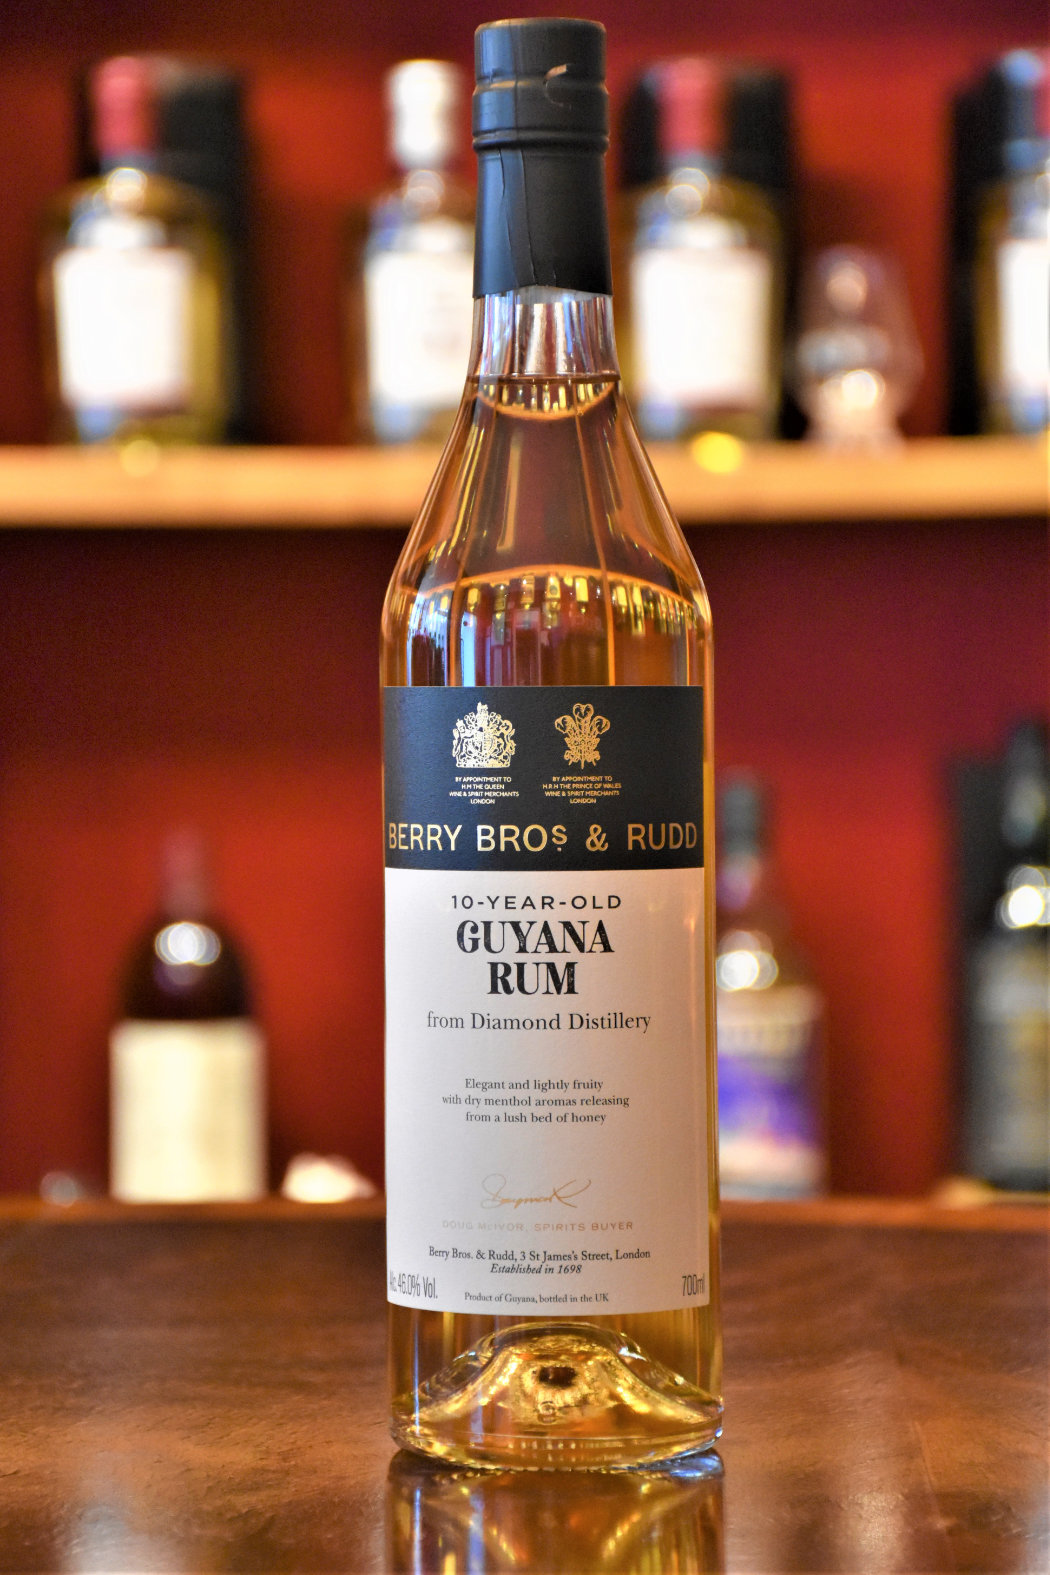 Guyana Rum 10 y.o. - Cask No. 56, Diamond Distillery, 46% Alc.Vol., Berry Bros. & Rudd